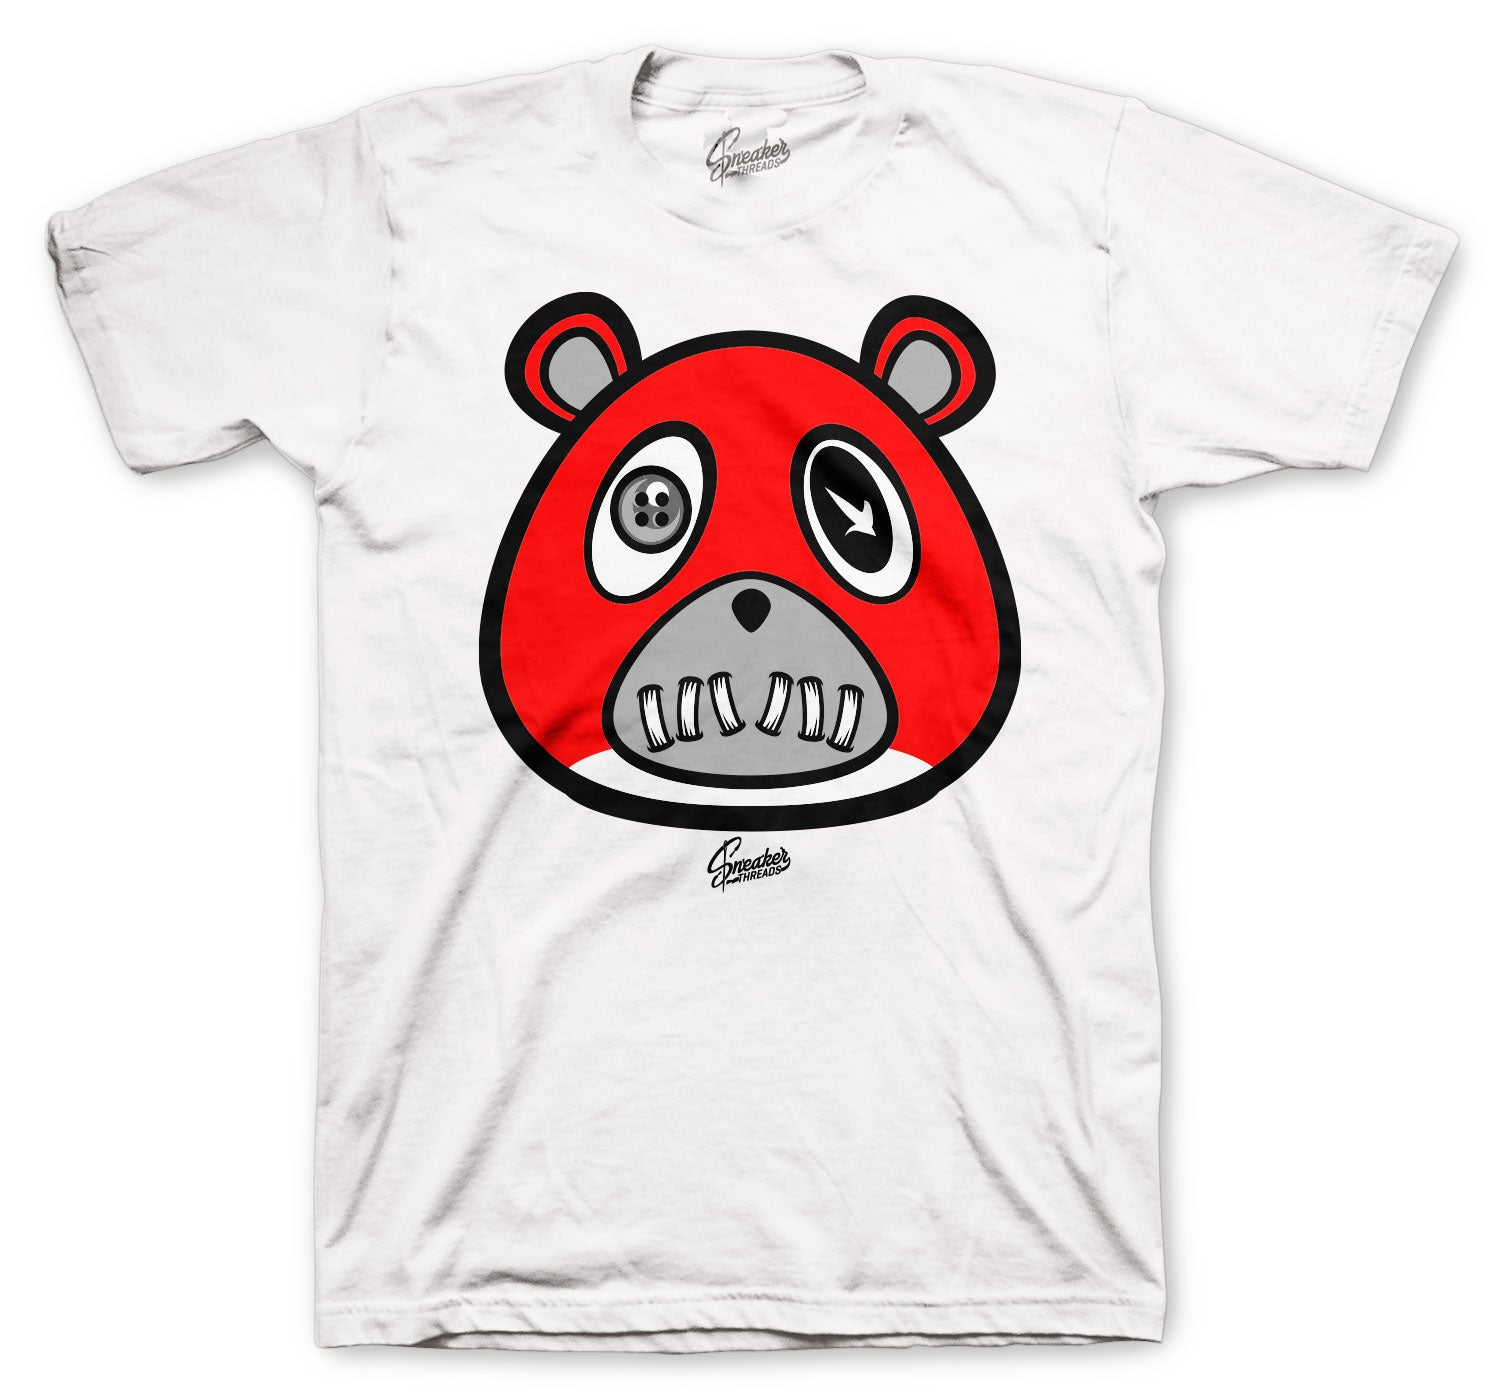 Dunk SB Chicago ST Bear Shirt